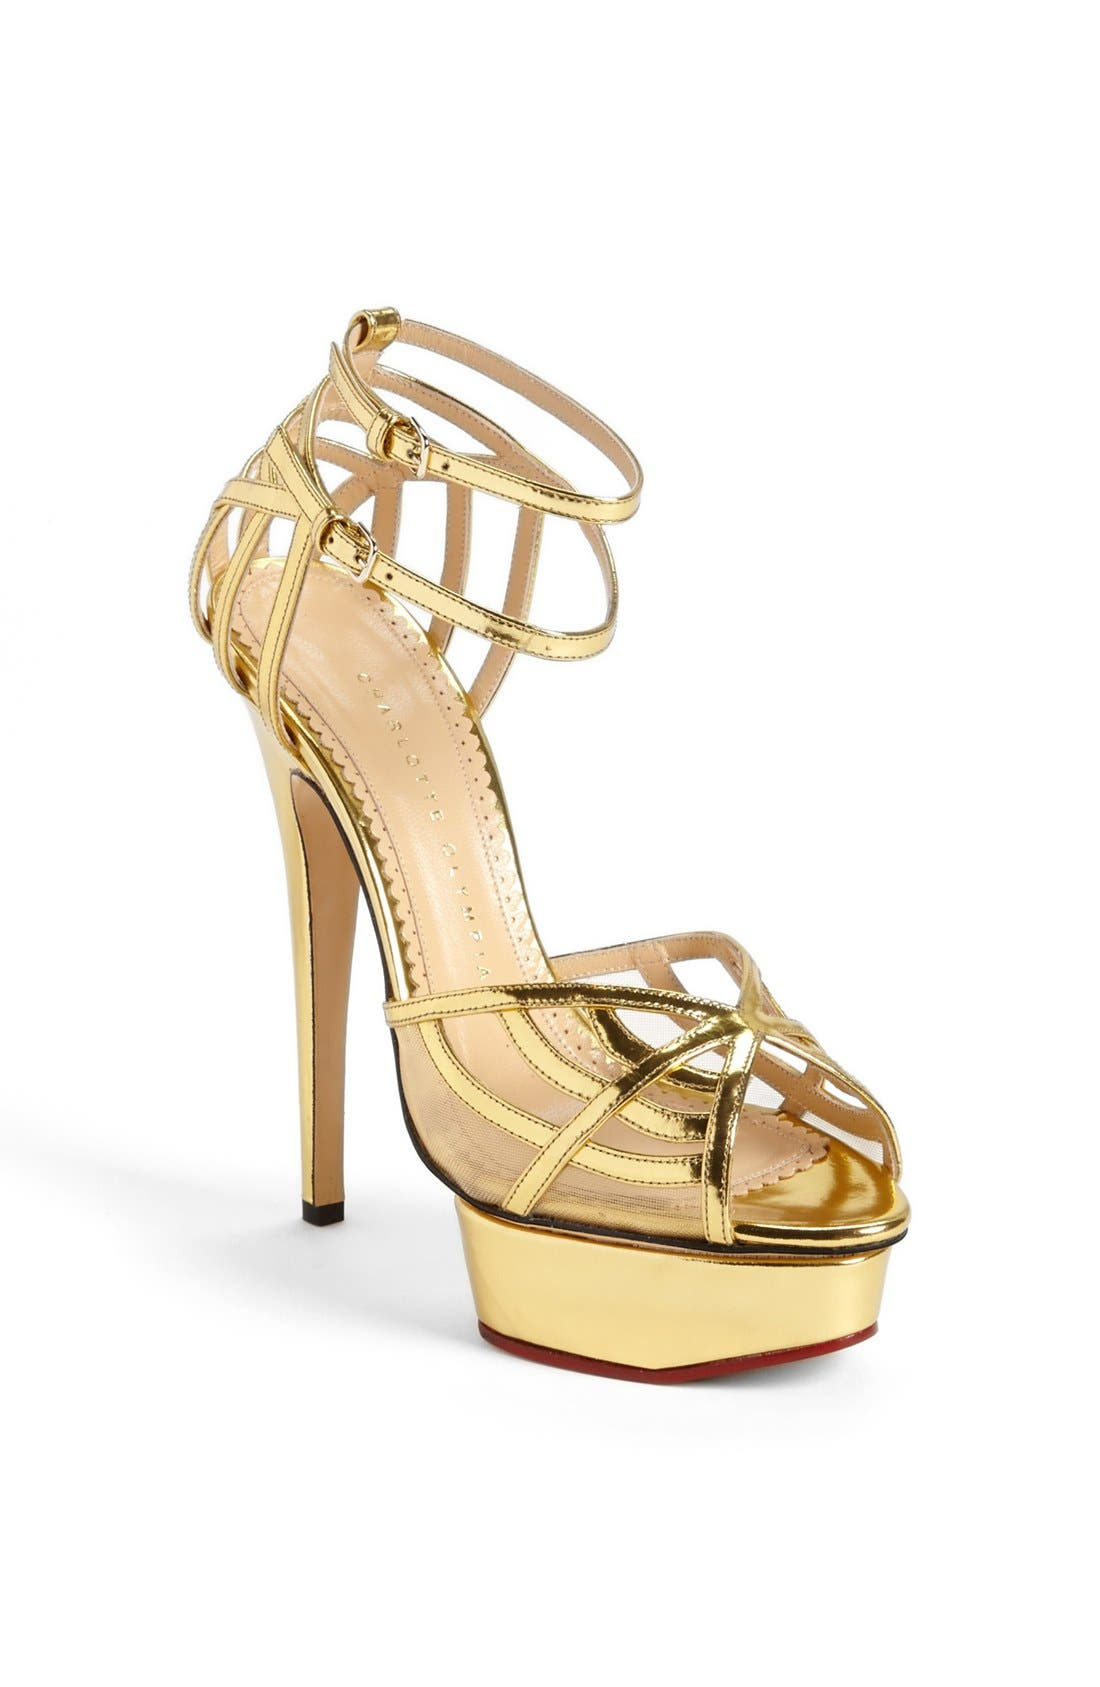 Alternate Image 1 Selected - Charlotte Olympia 'Octavia' Sandal